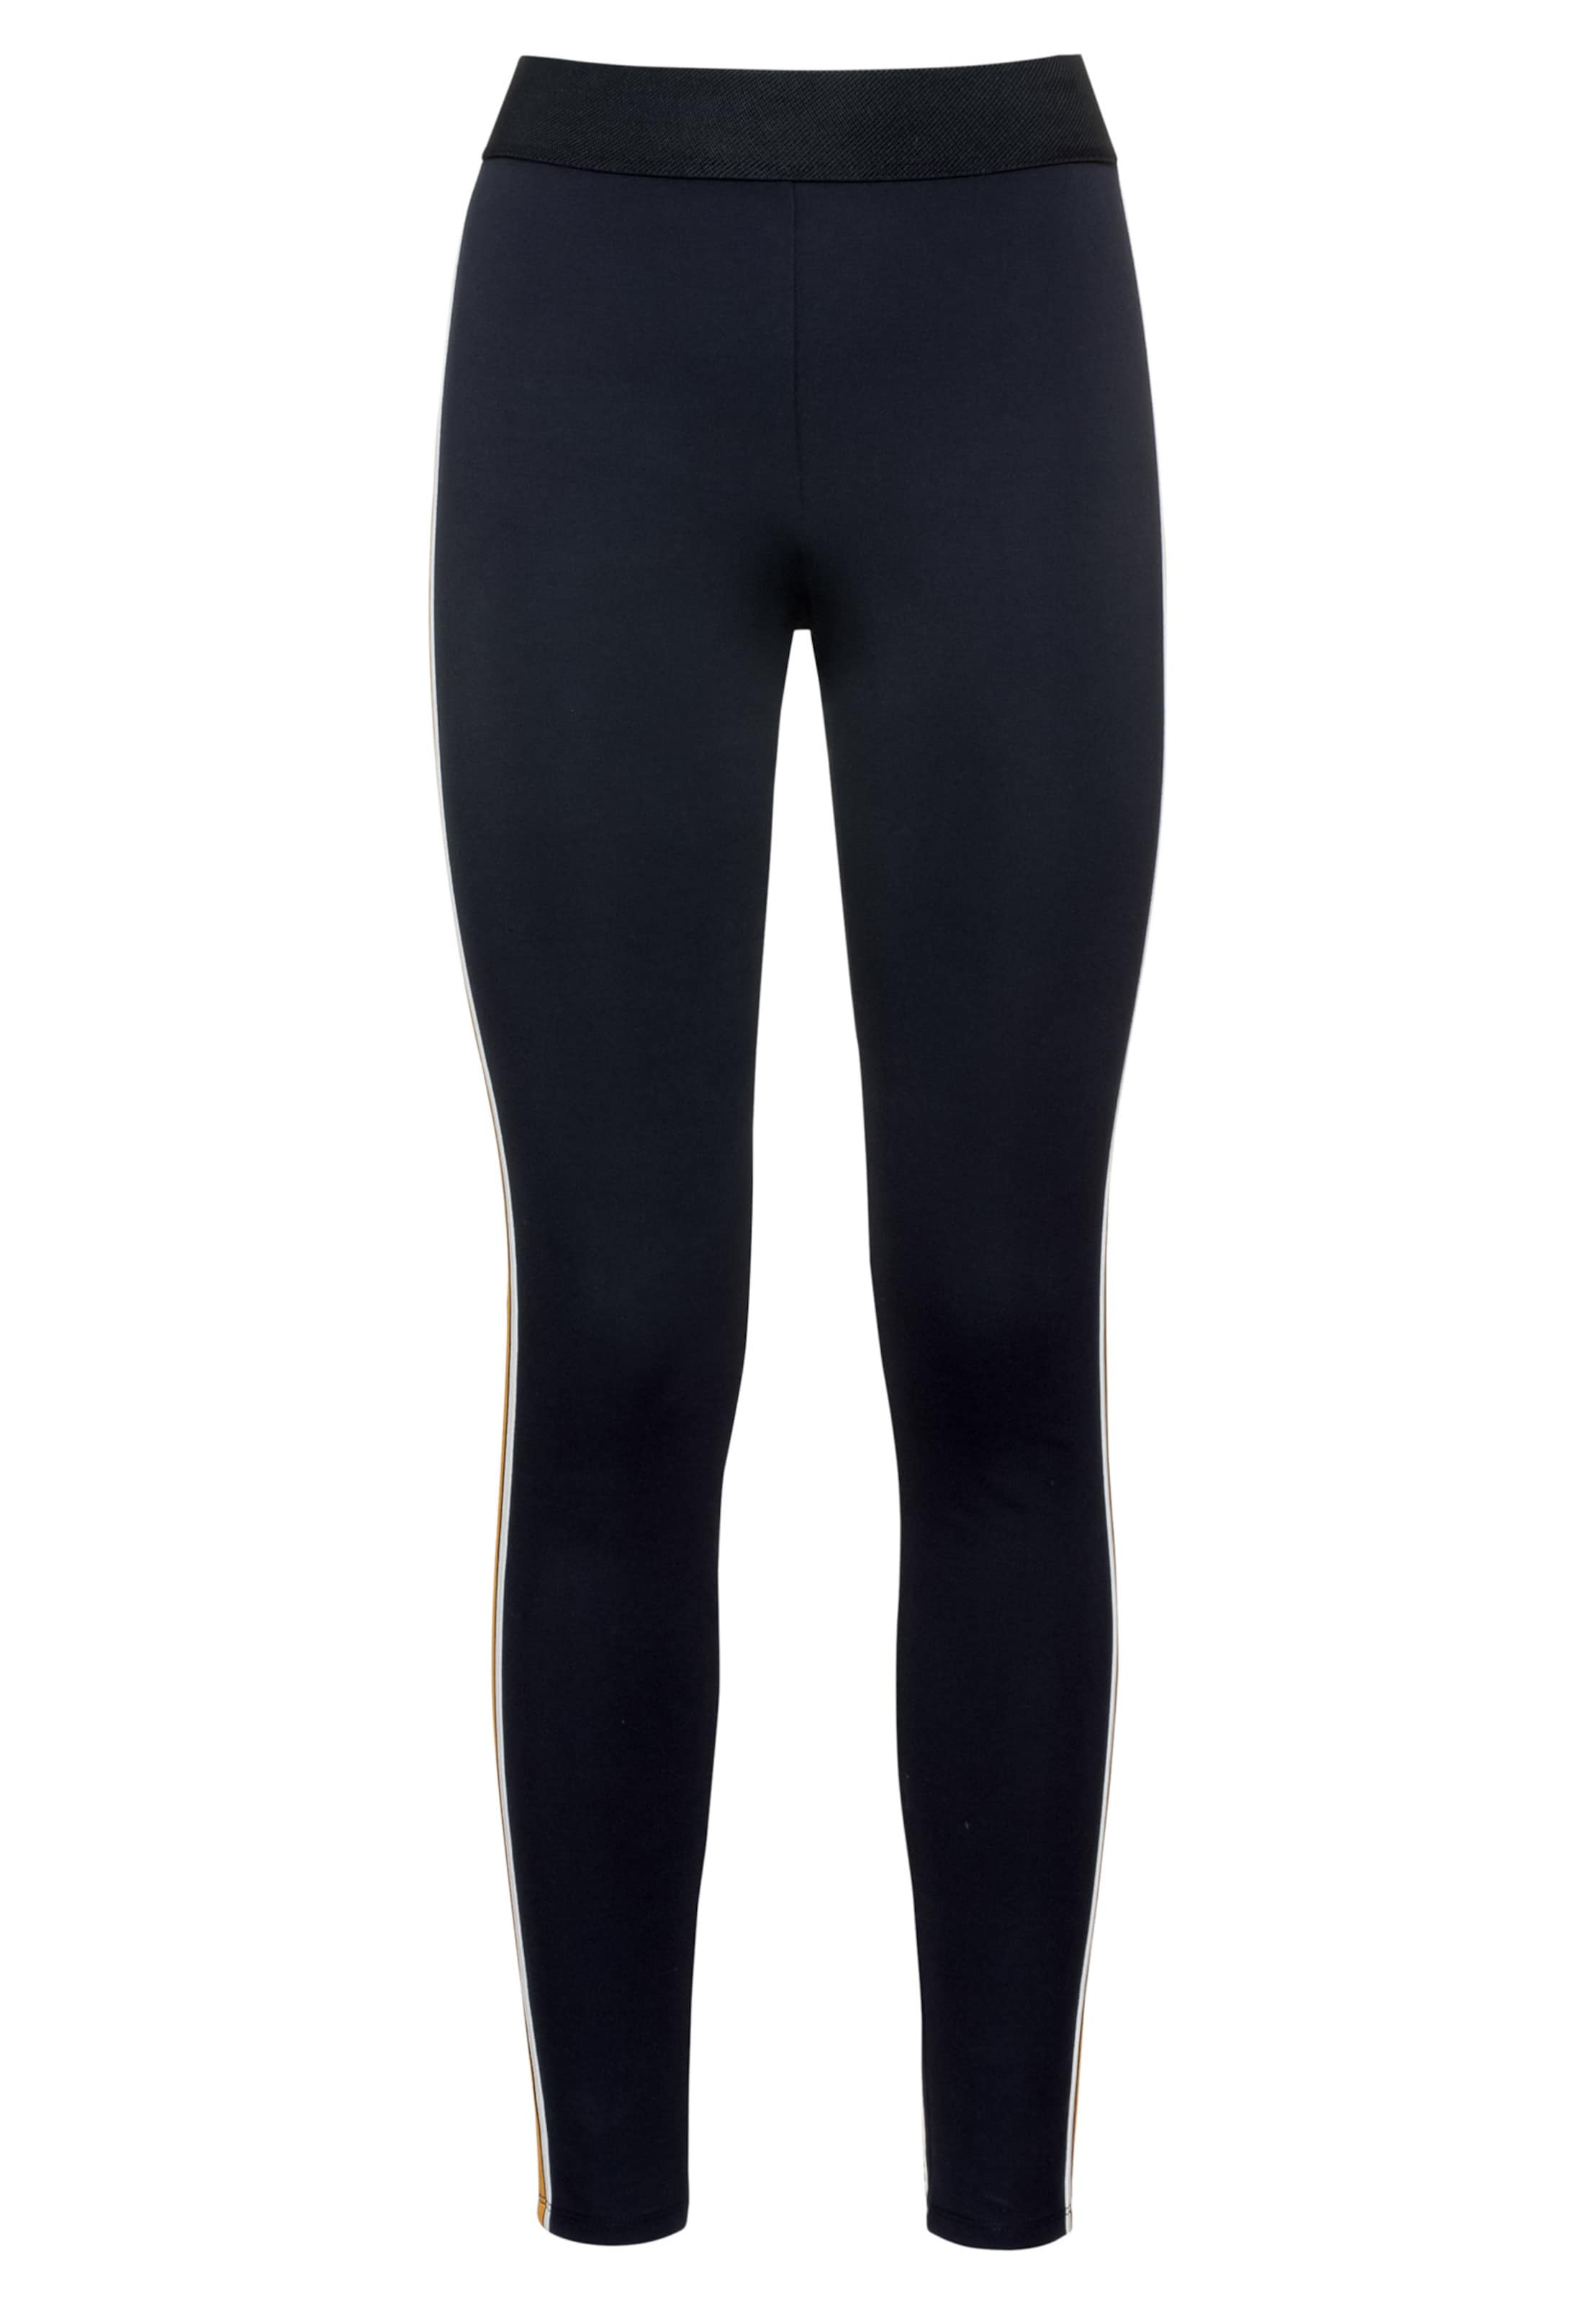 Leggings Leggings In Hallhuber Hallhuber In NavySenf Leggings NavySenf Hallhuber PXOiuZk